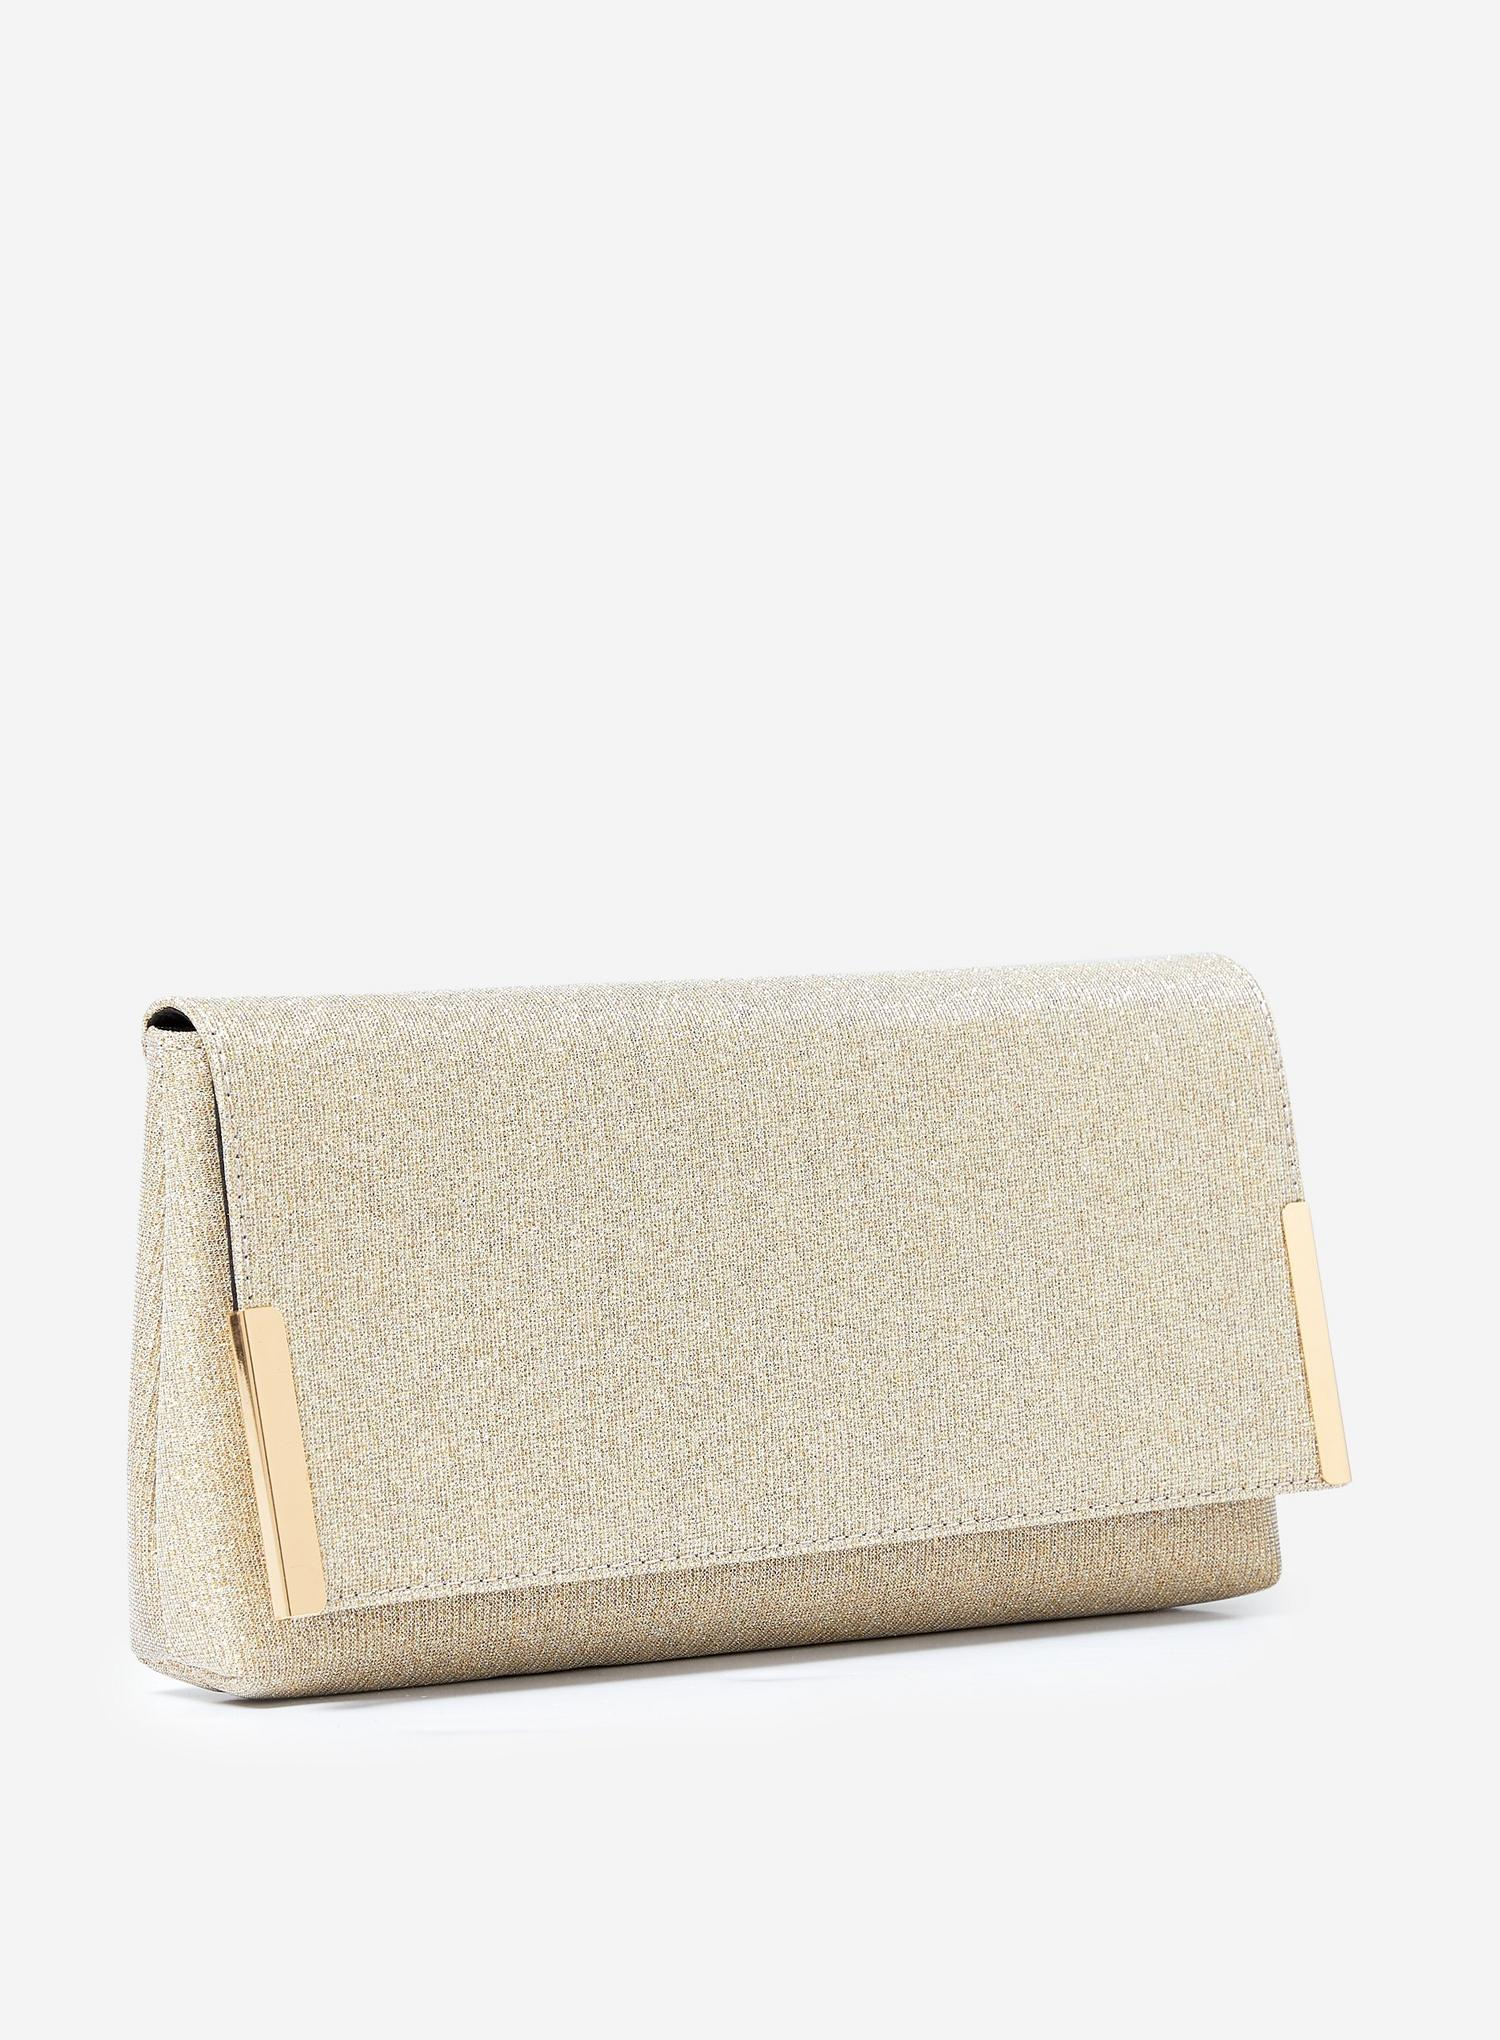 579 Gold Metal Side Bar Clutch Bag image number 2